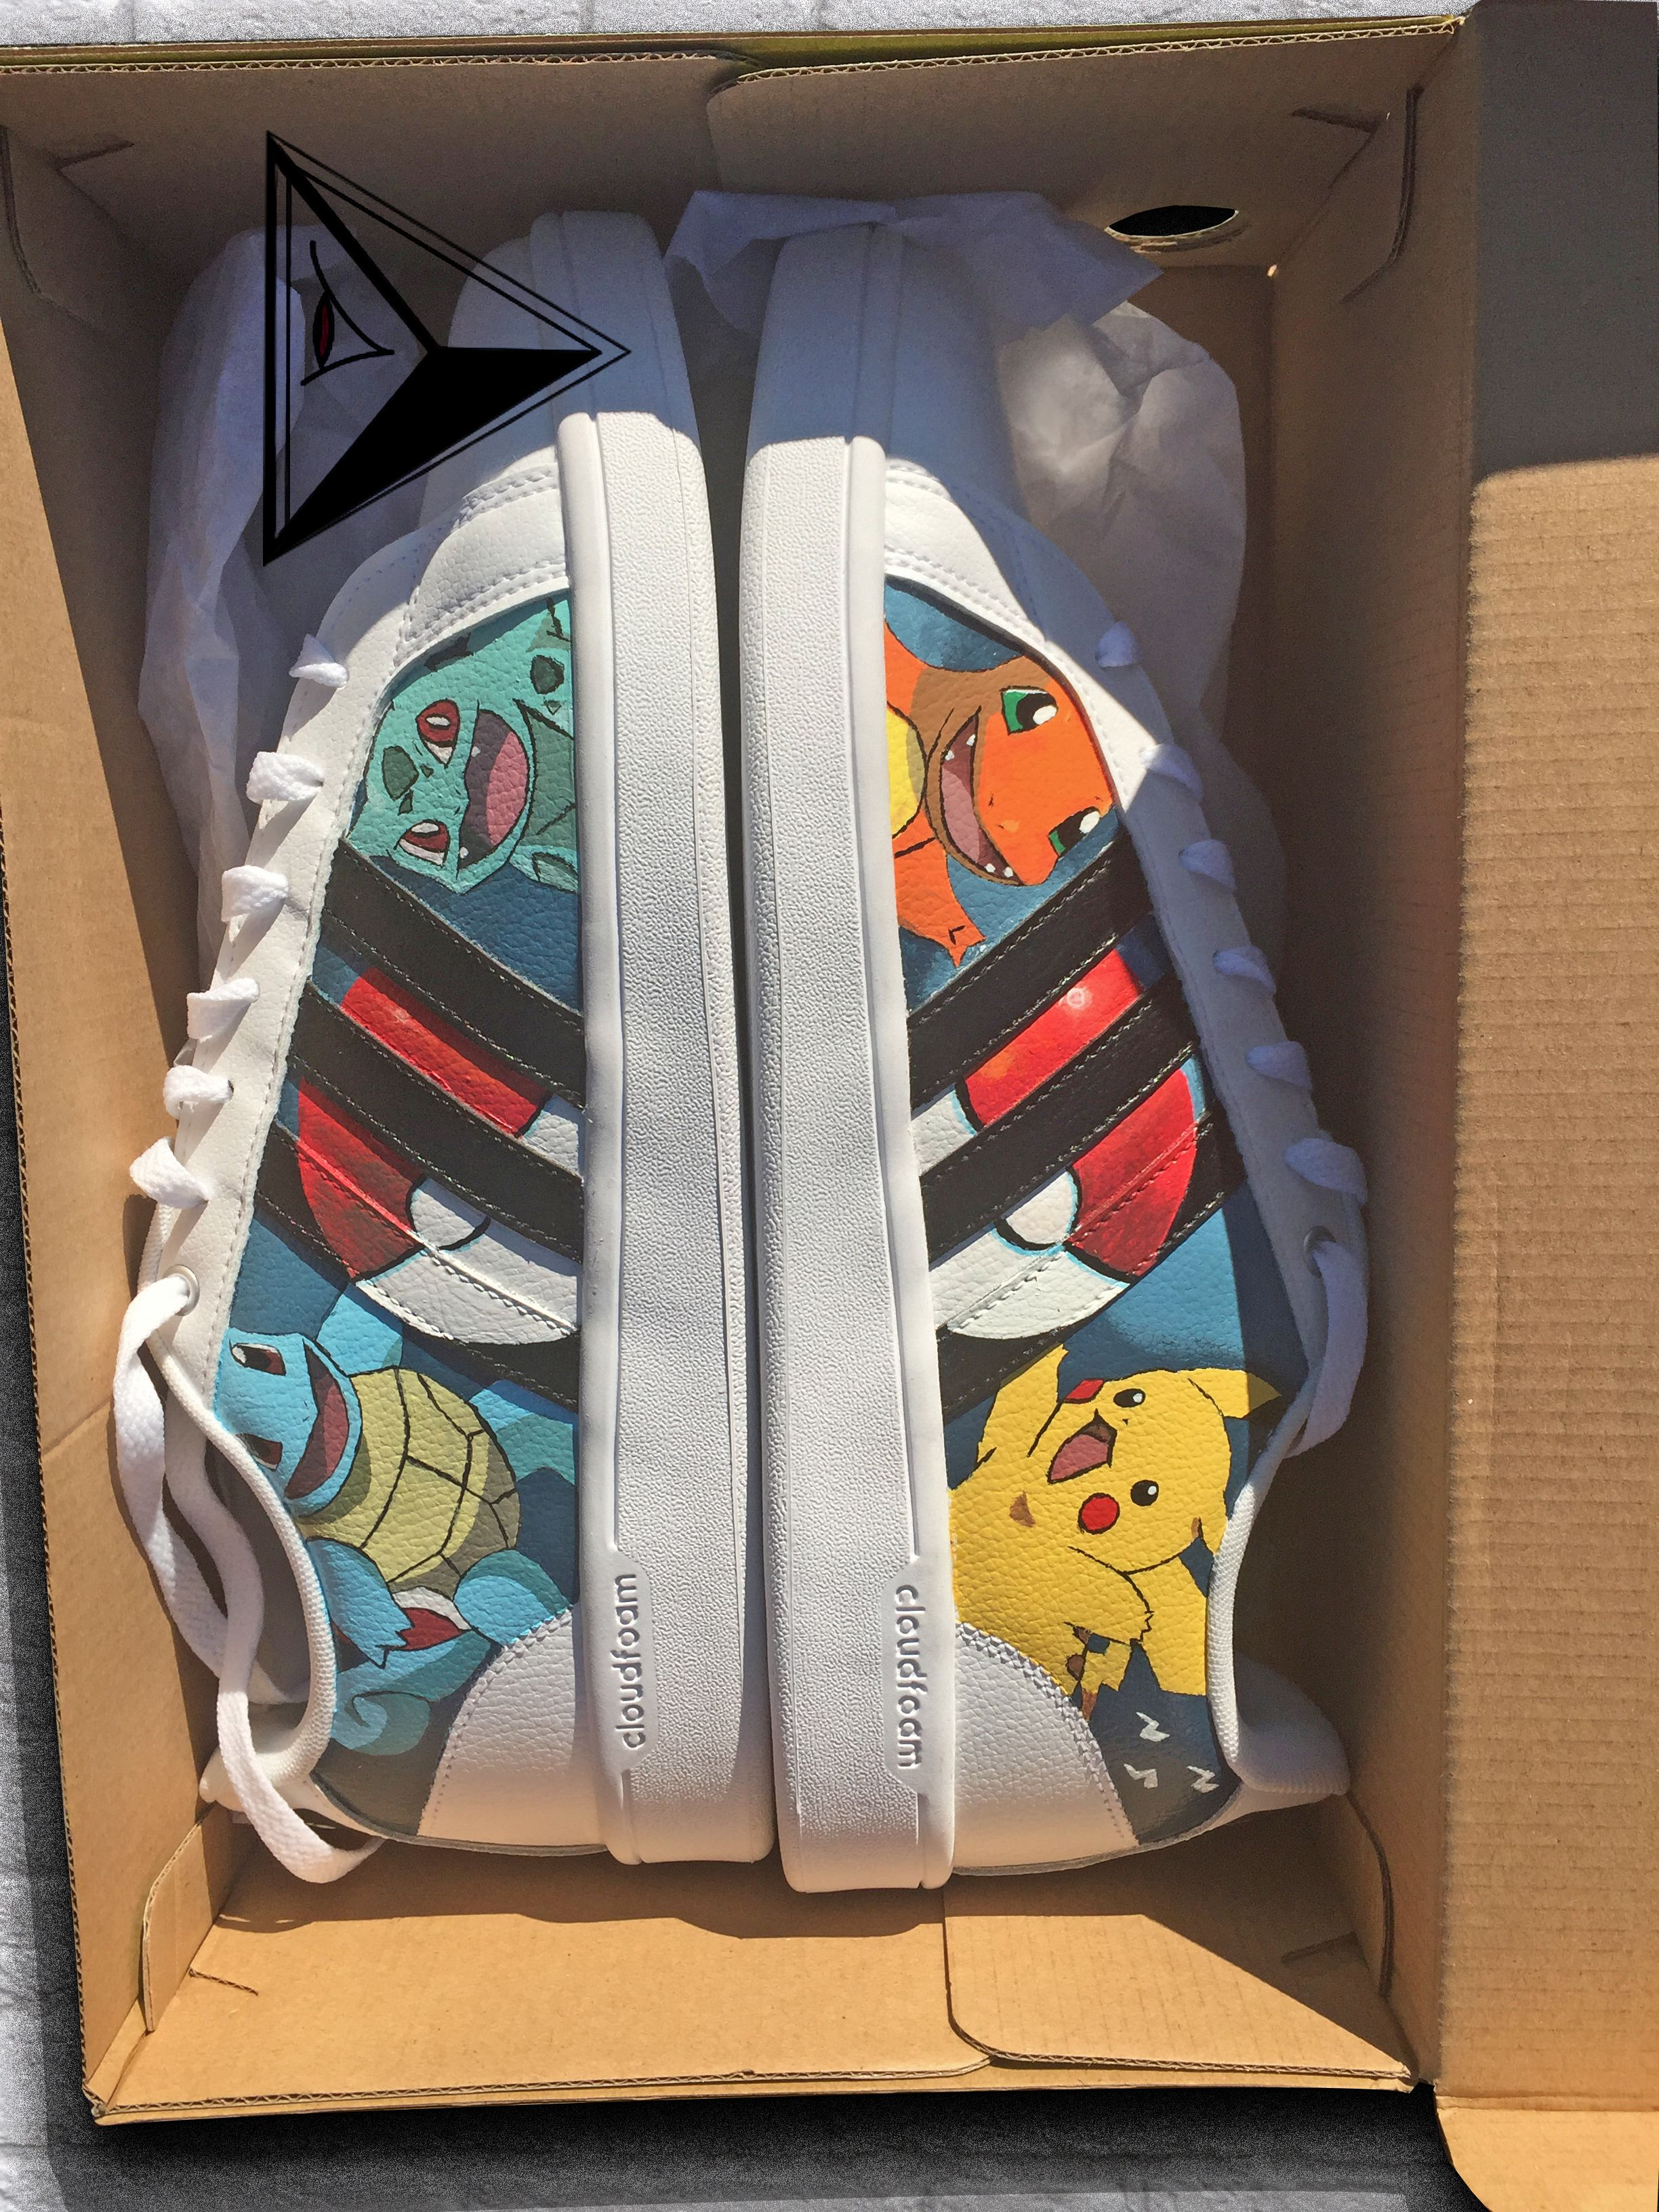 d81f8b556e Custom Pikachu Charmander Squirtle Bulbasaur Pokemon Adidas neocloudfoam  sneakers. Availiable on my etsy page!